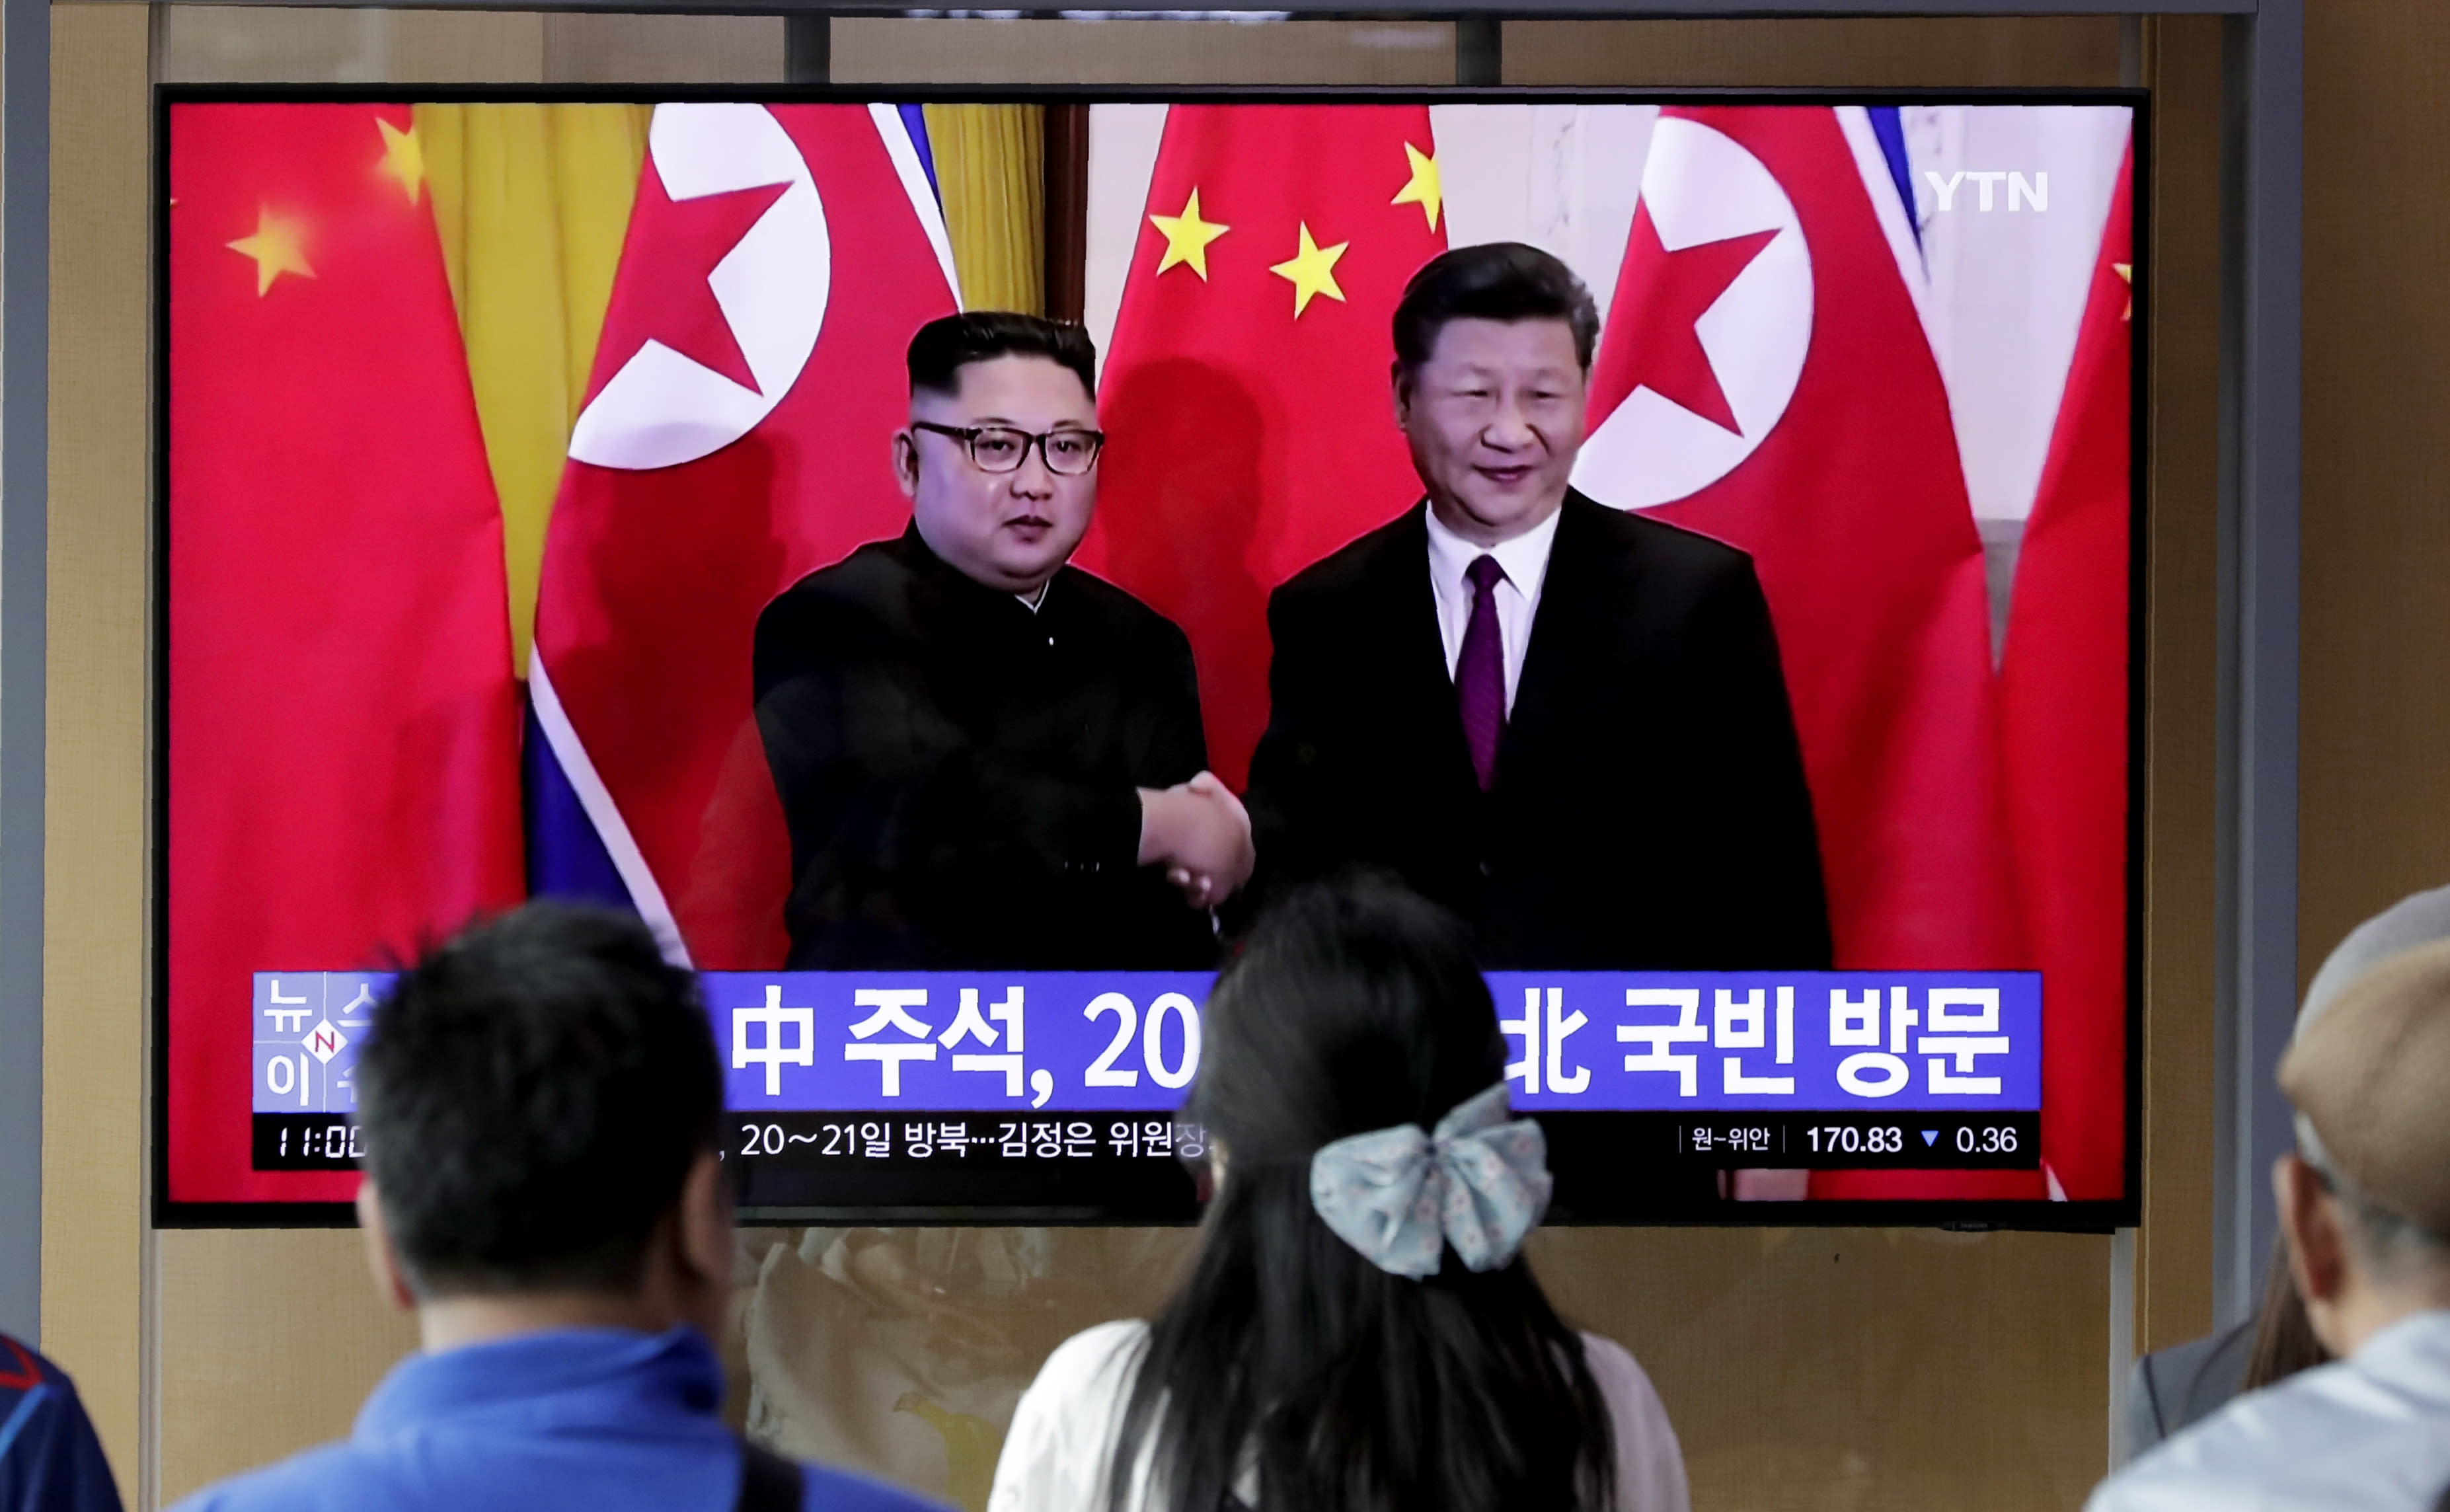 Xi, Kim summit topics: Friendship, food aid and maybe nukes